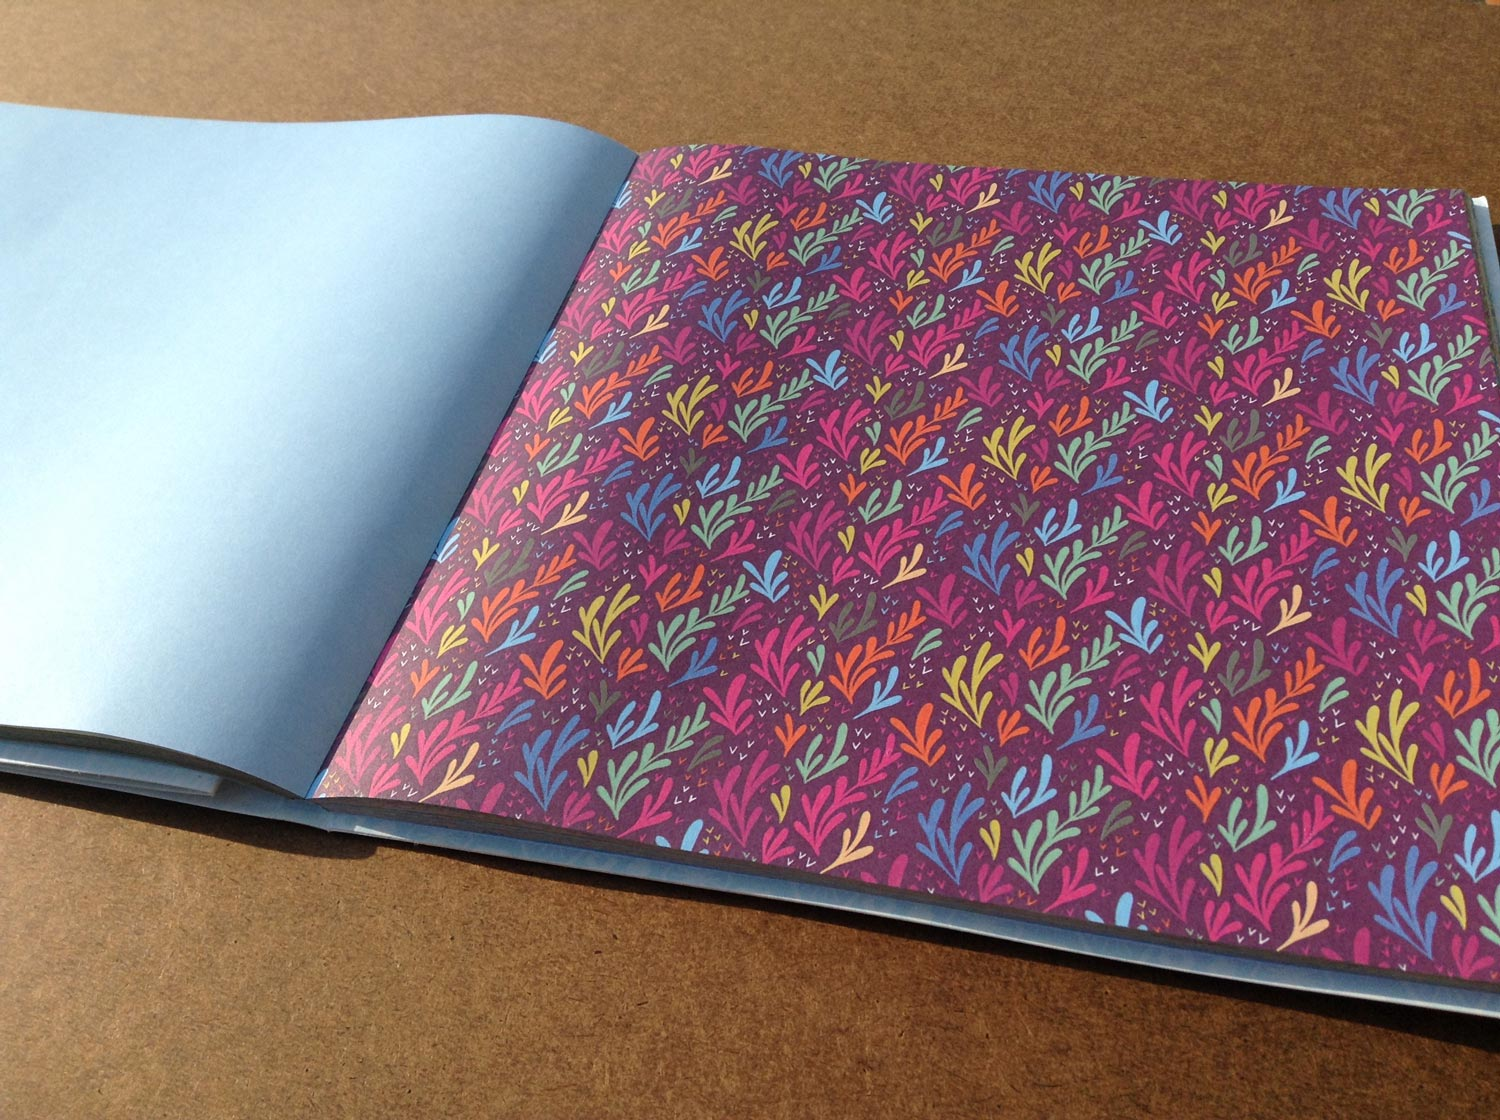 Anni_Betts_Origami_Book_Pattern_Spread_3